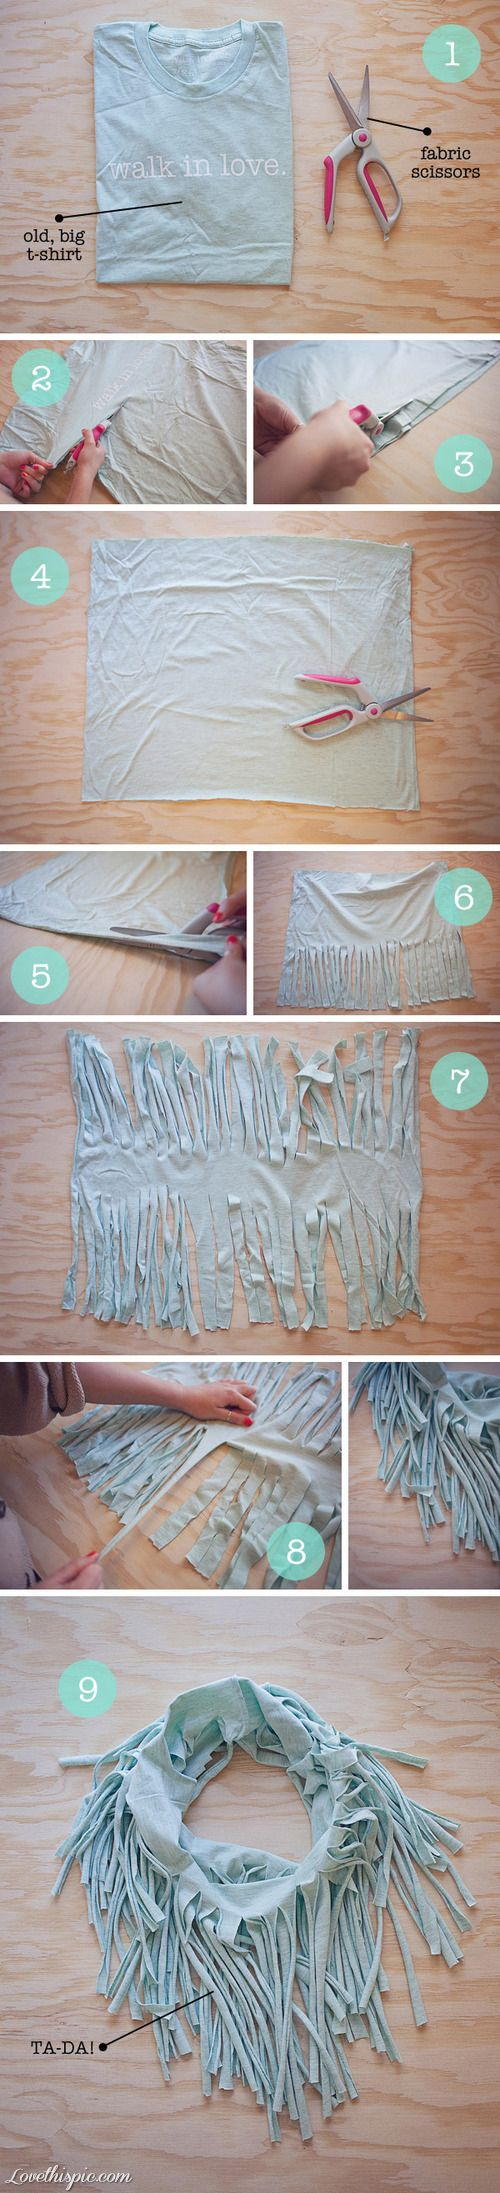 DIY T-Shirt Scarf Pictures, Photos, and Images for Facebook, Tumblr, Pinterest, and Twitter